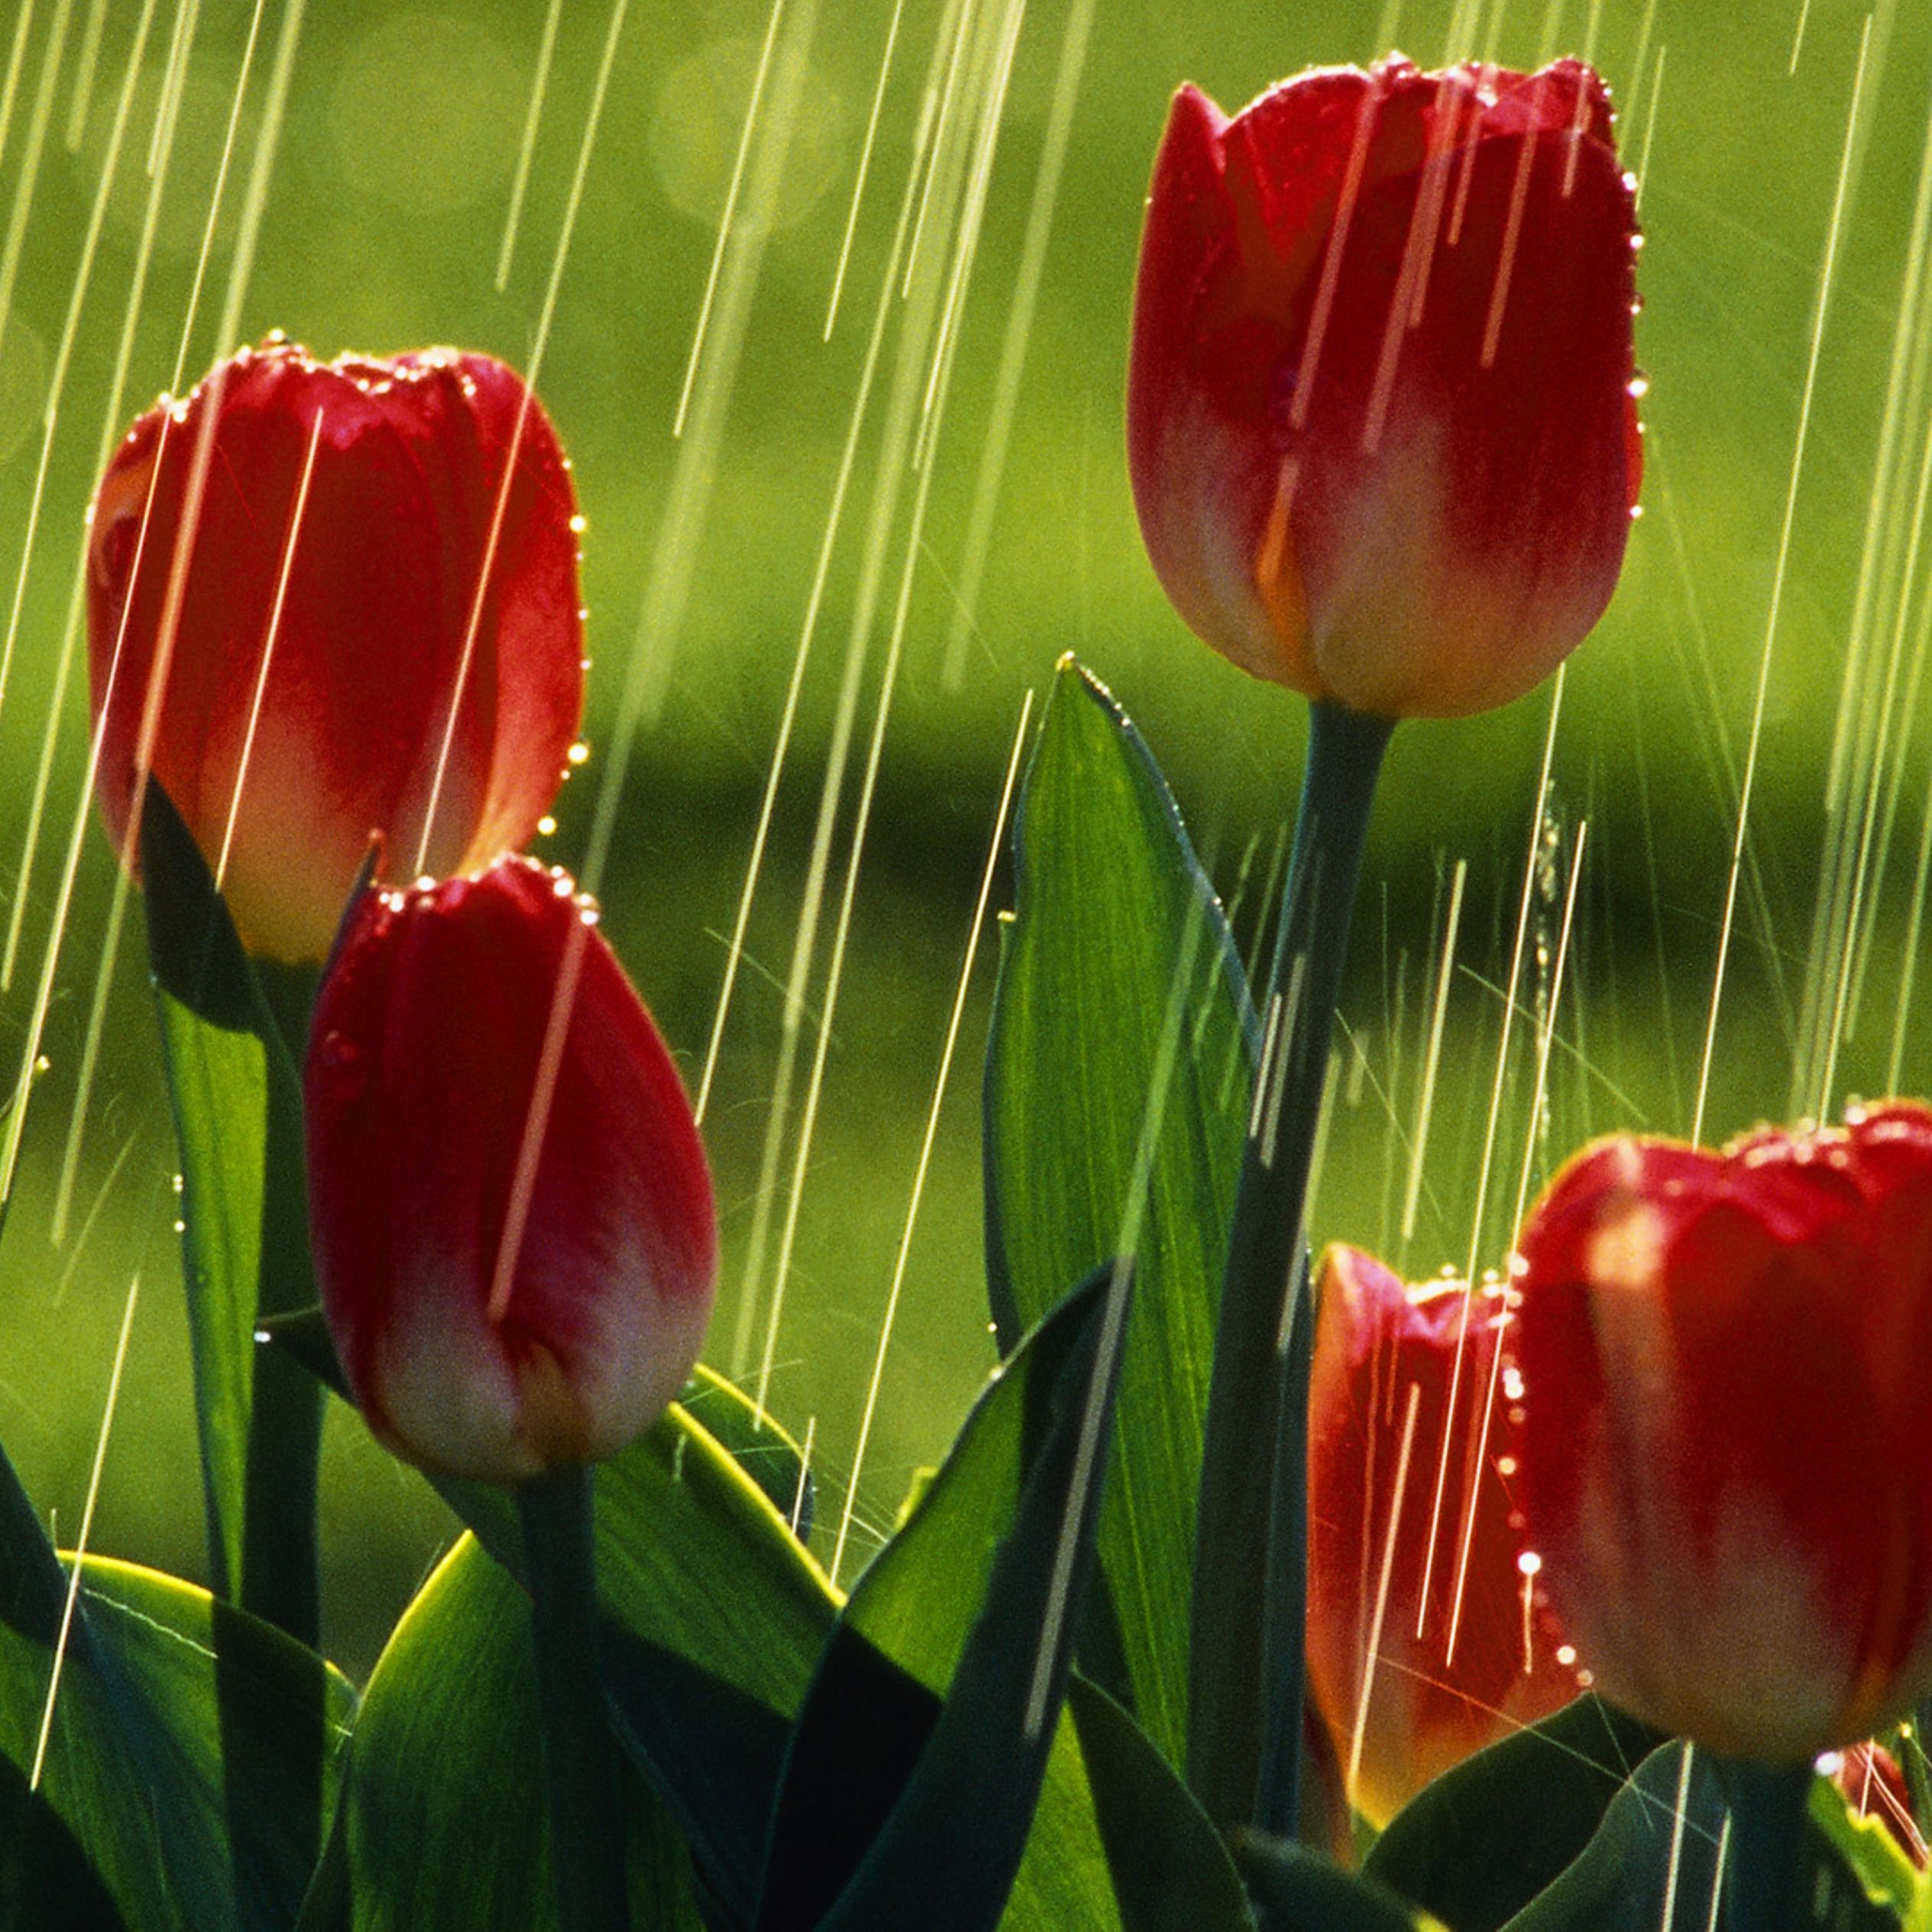 Red tulips under the rain flowers wallpaper wallpaper download download wallpaper 2524x2524 red tulips under the rain flowers wallpaper altavistaventures Image collections